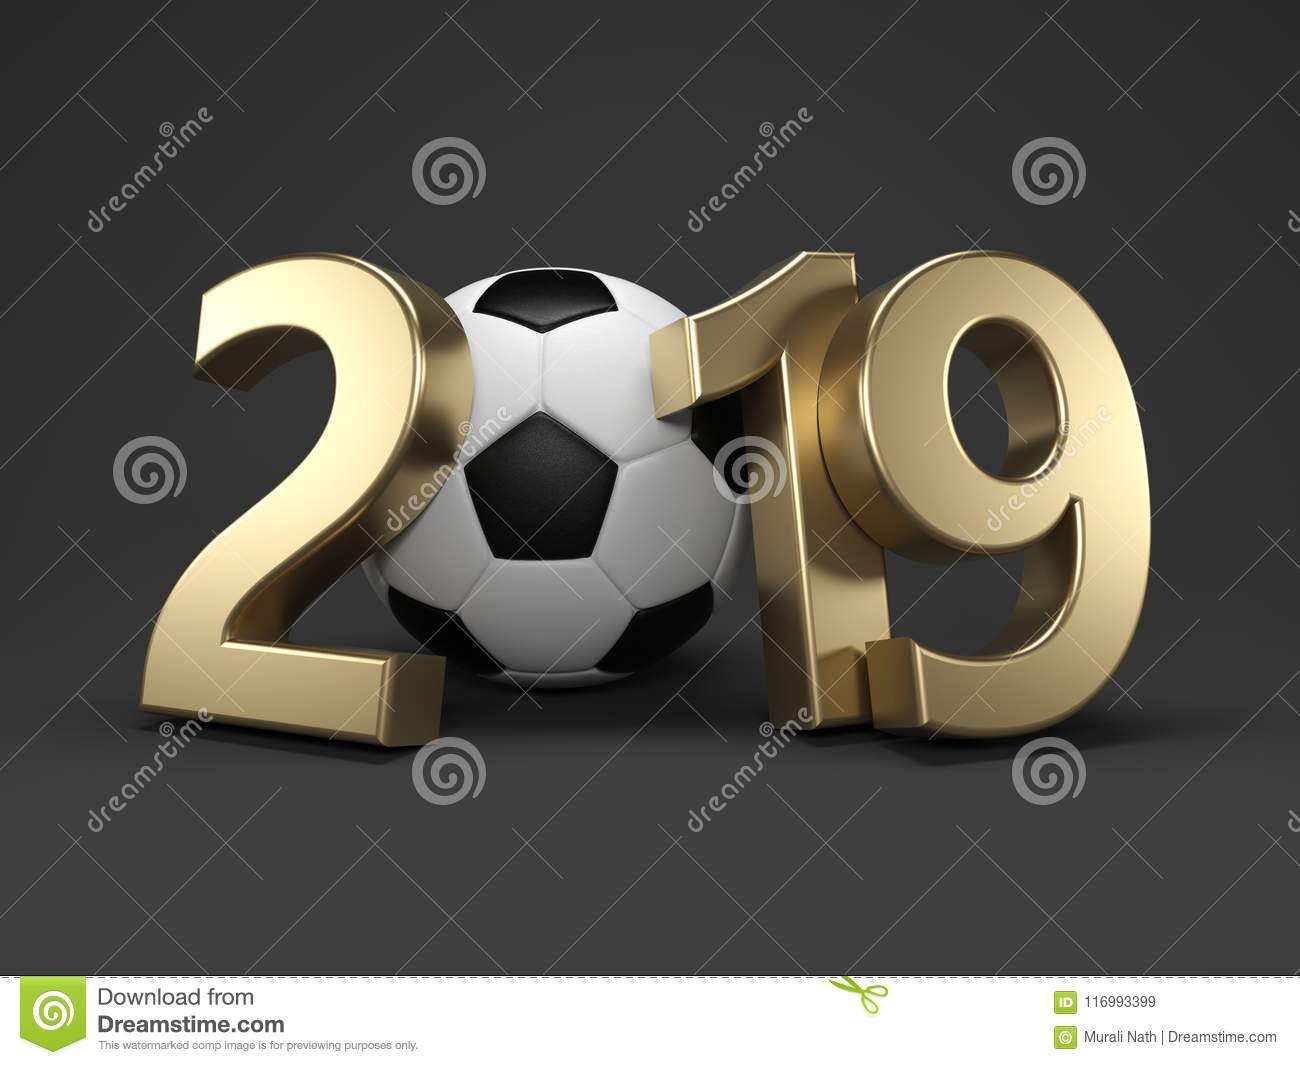 Football Calendar 2019 New Year 2019 With Football Stock Illustration   Illustration of